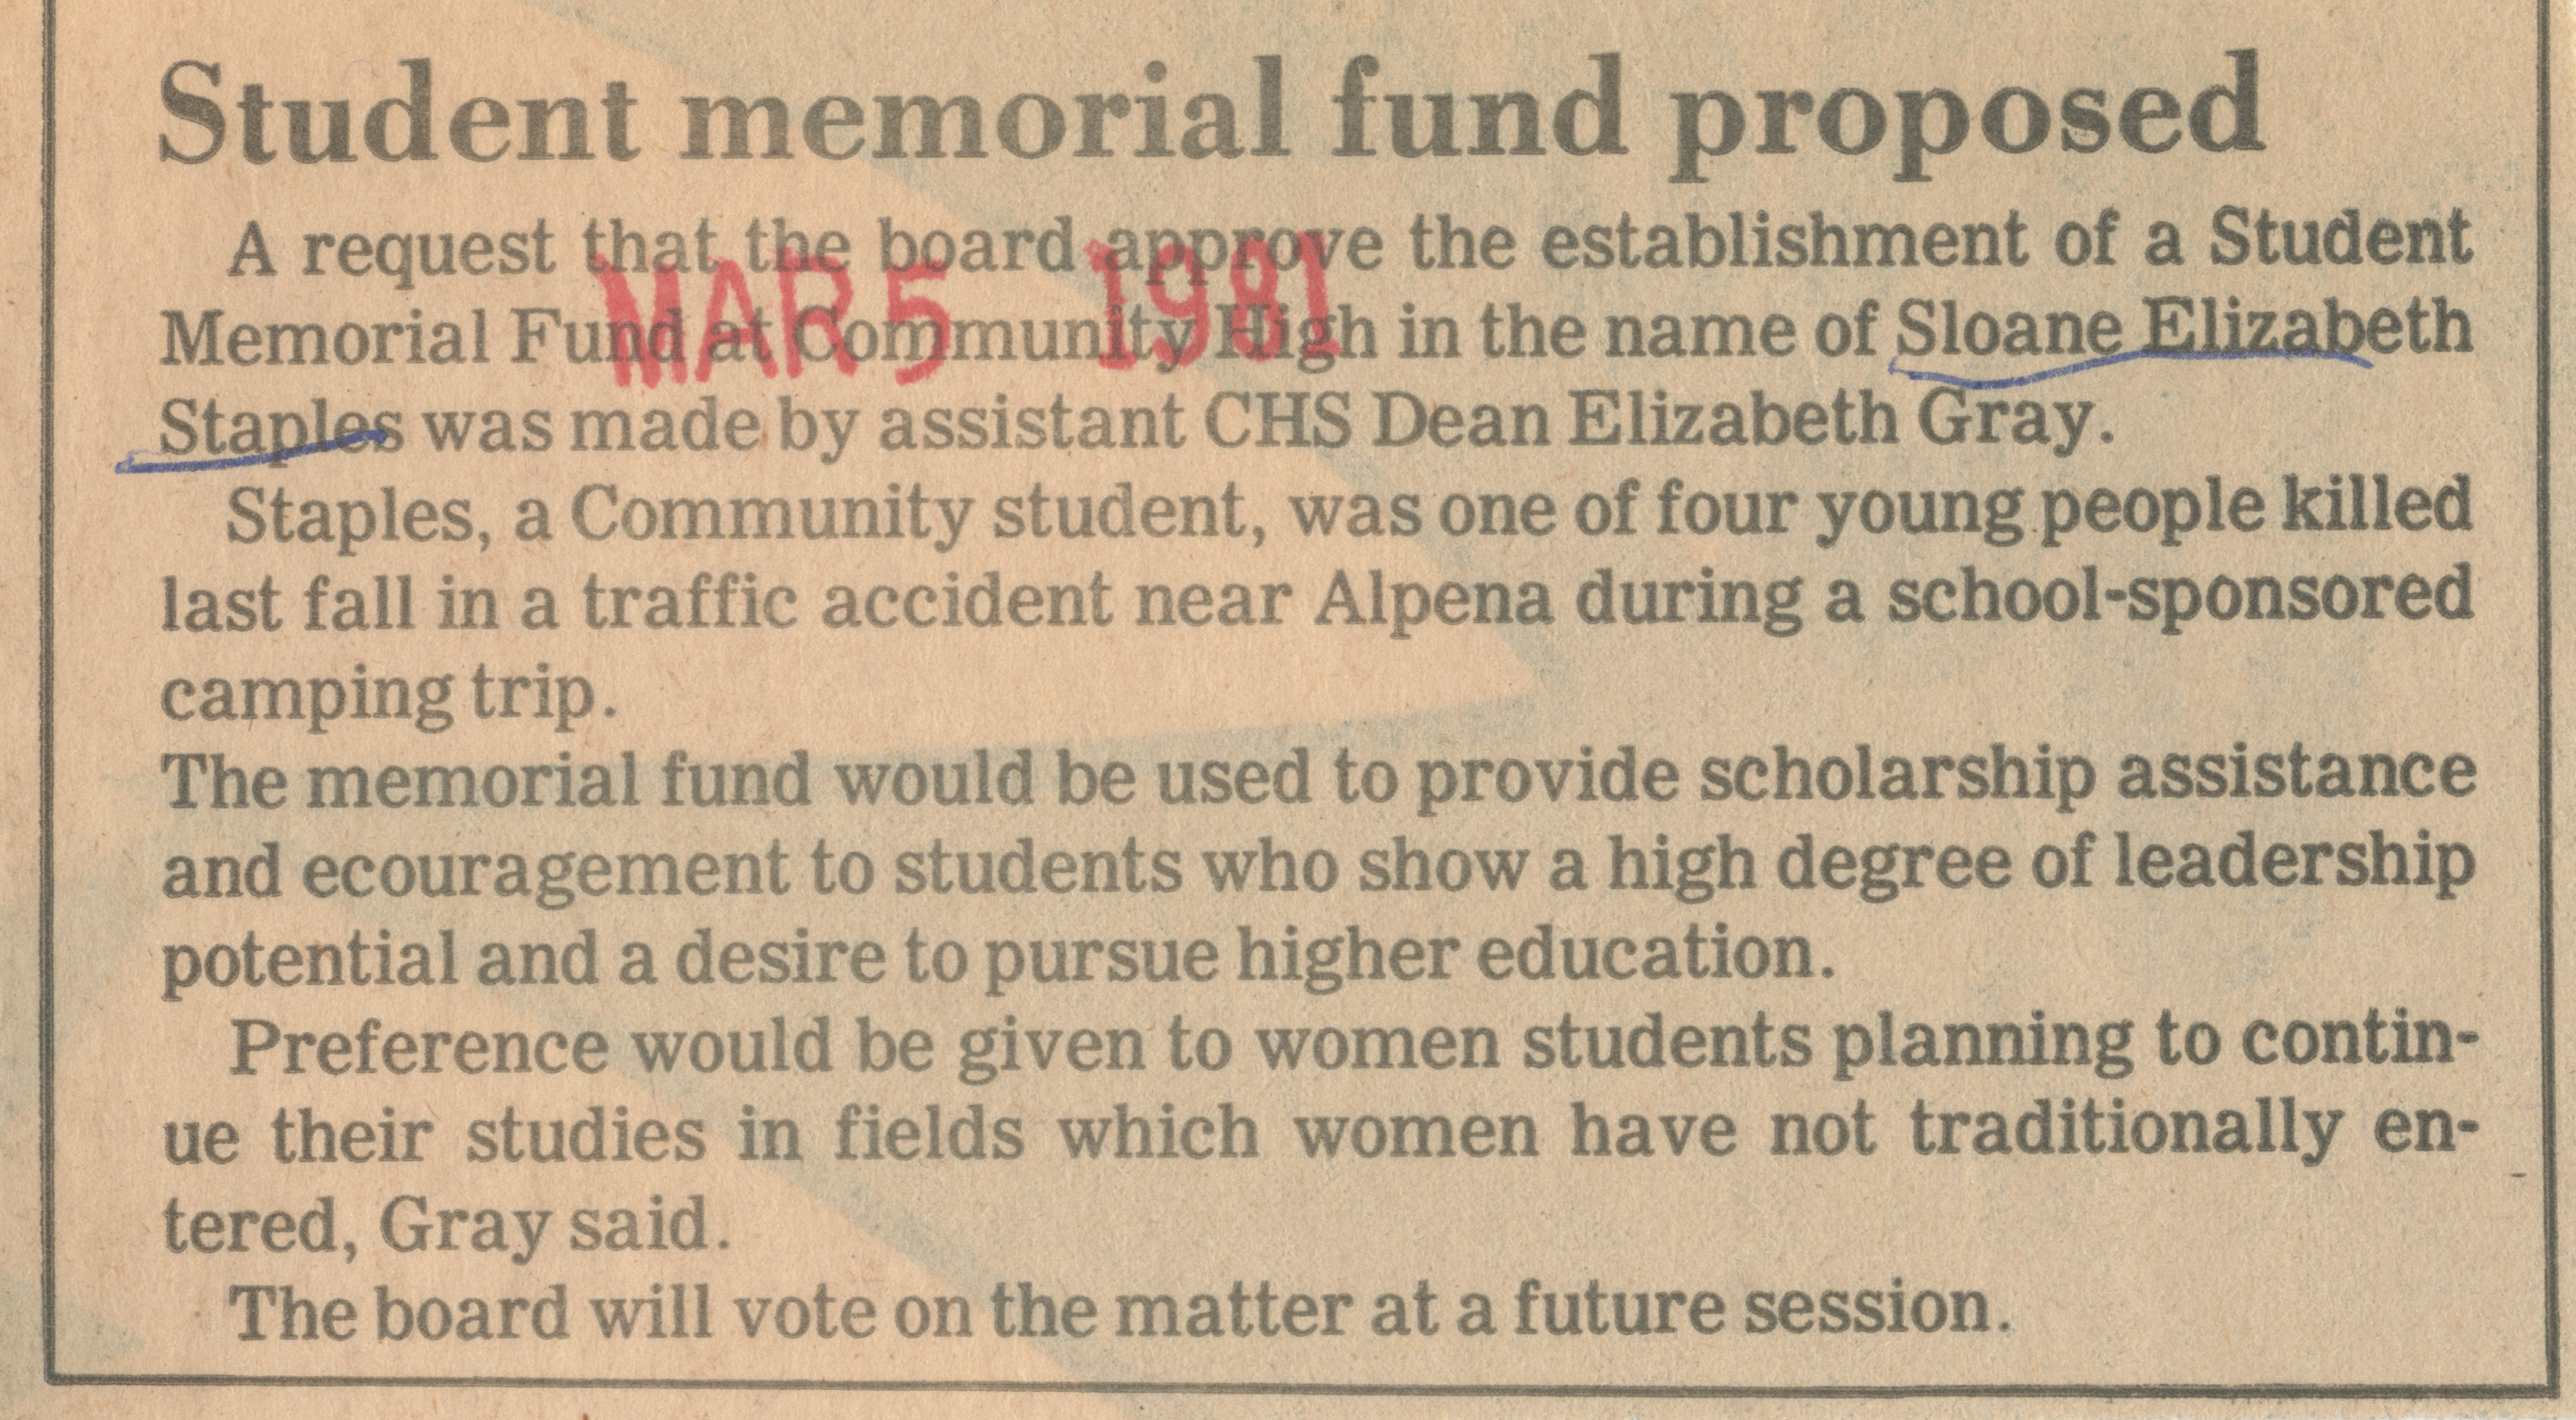 Student memorial fund proposed image